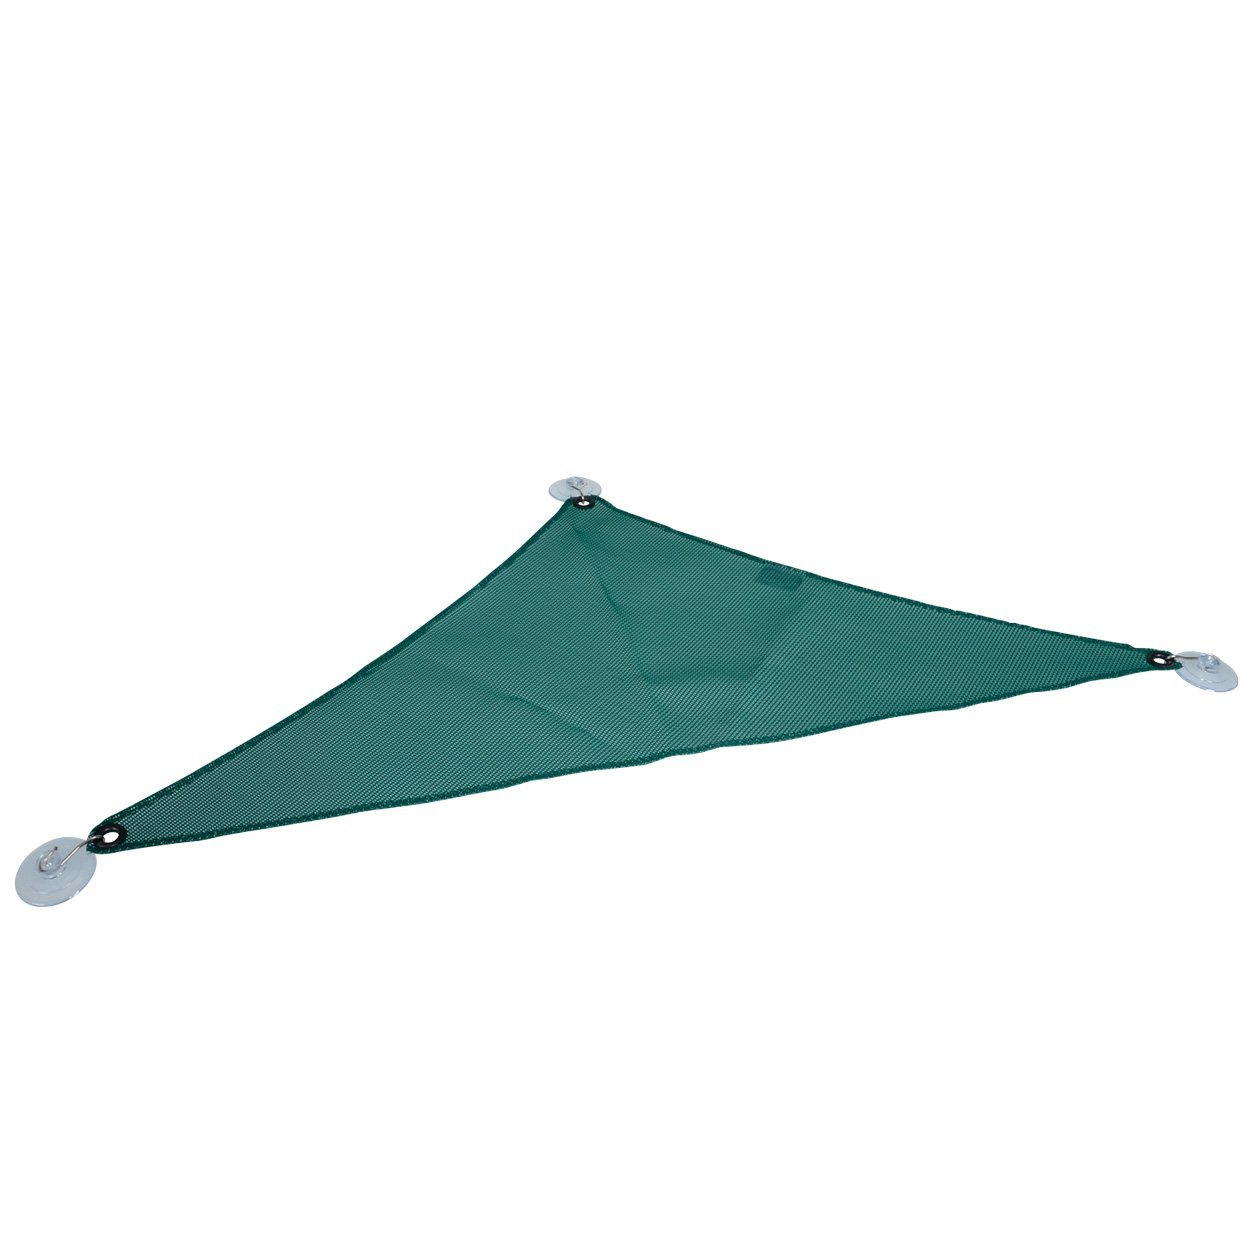 26389 Repti Giant Hammock, Easy to clean By Zoo Med by